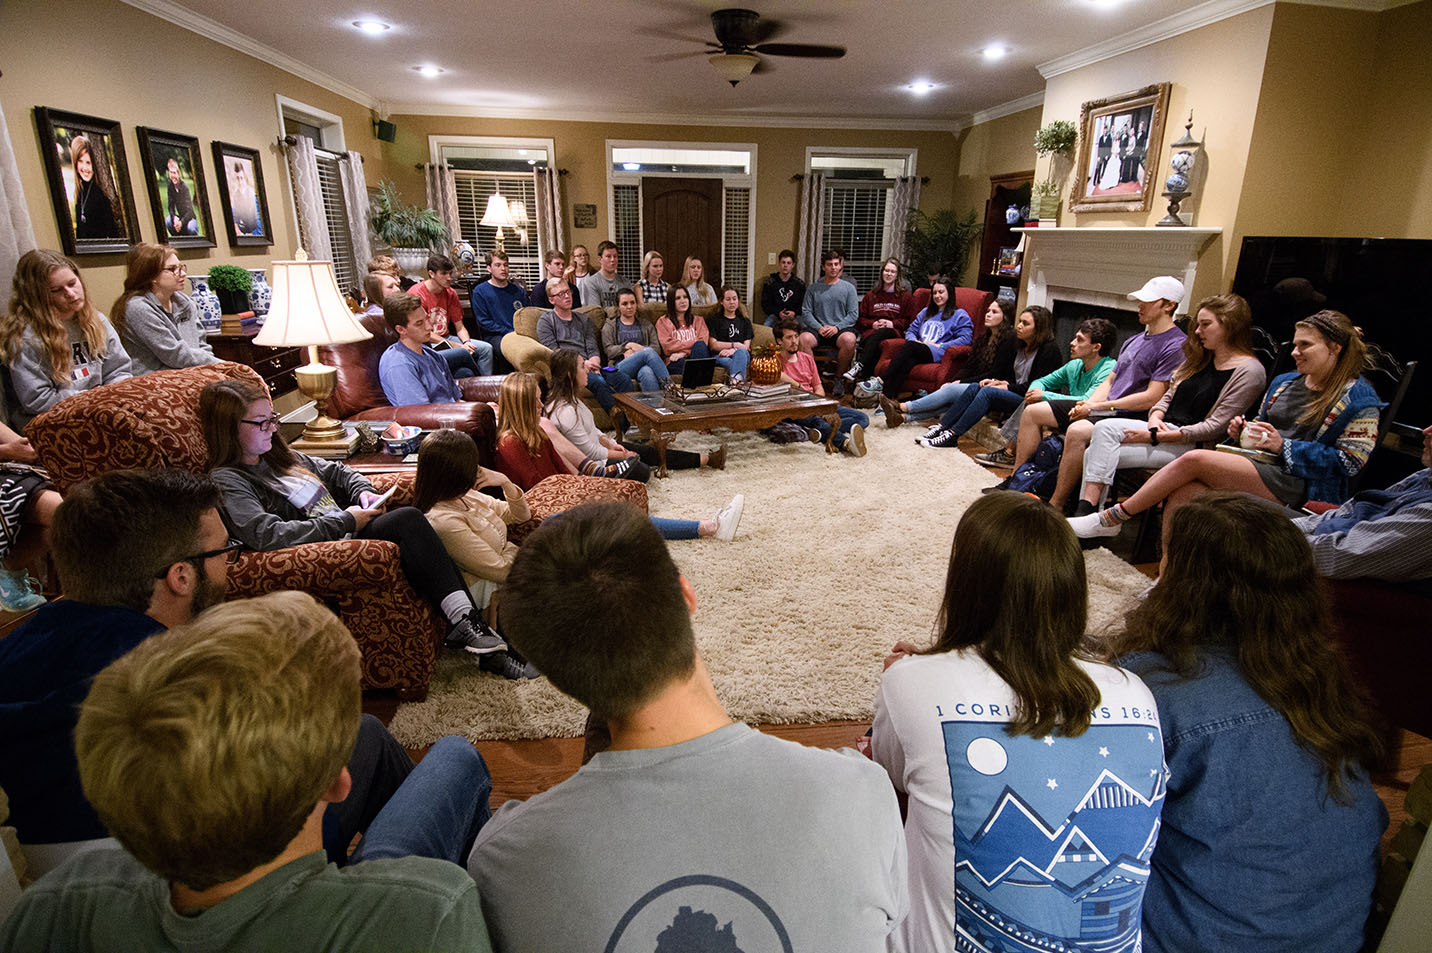 This is a photo of students at a home Bible study.